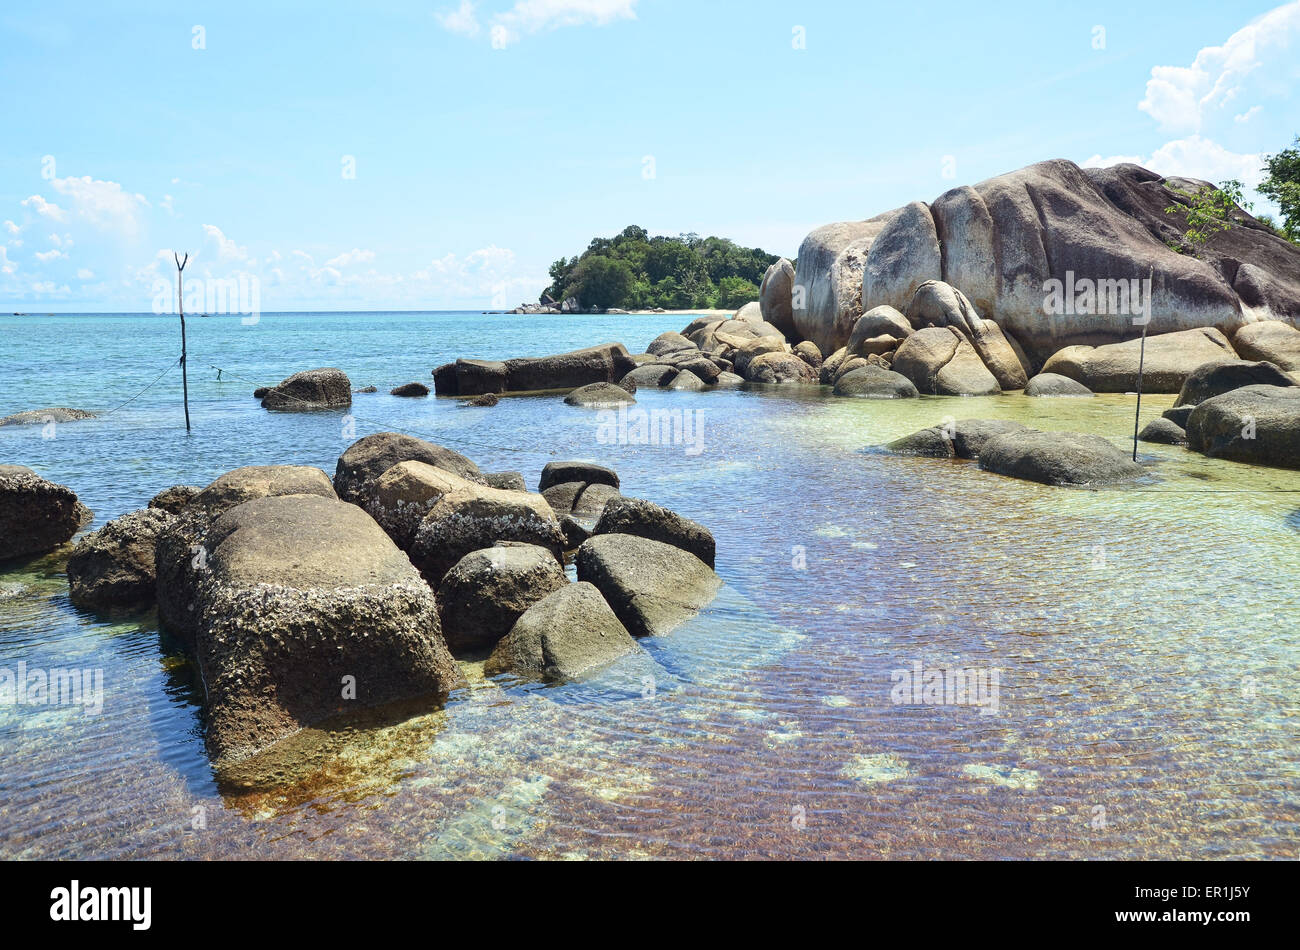 Tanjung Tinggi Beach which is rich for its granites with their various sizes - Stock Image